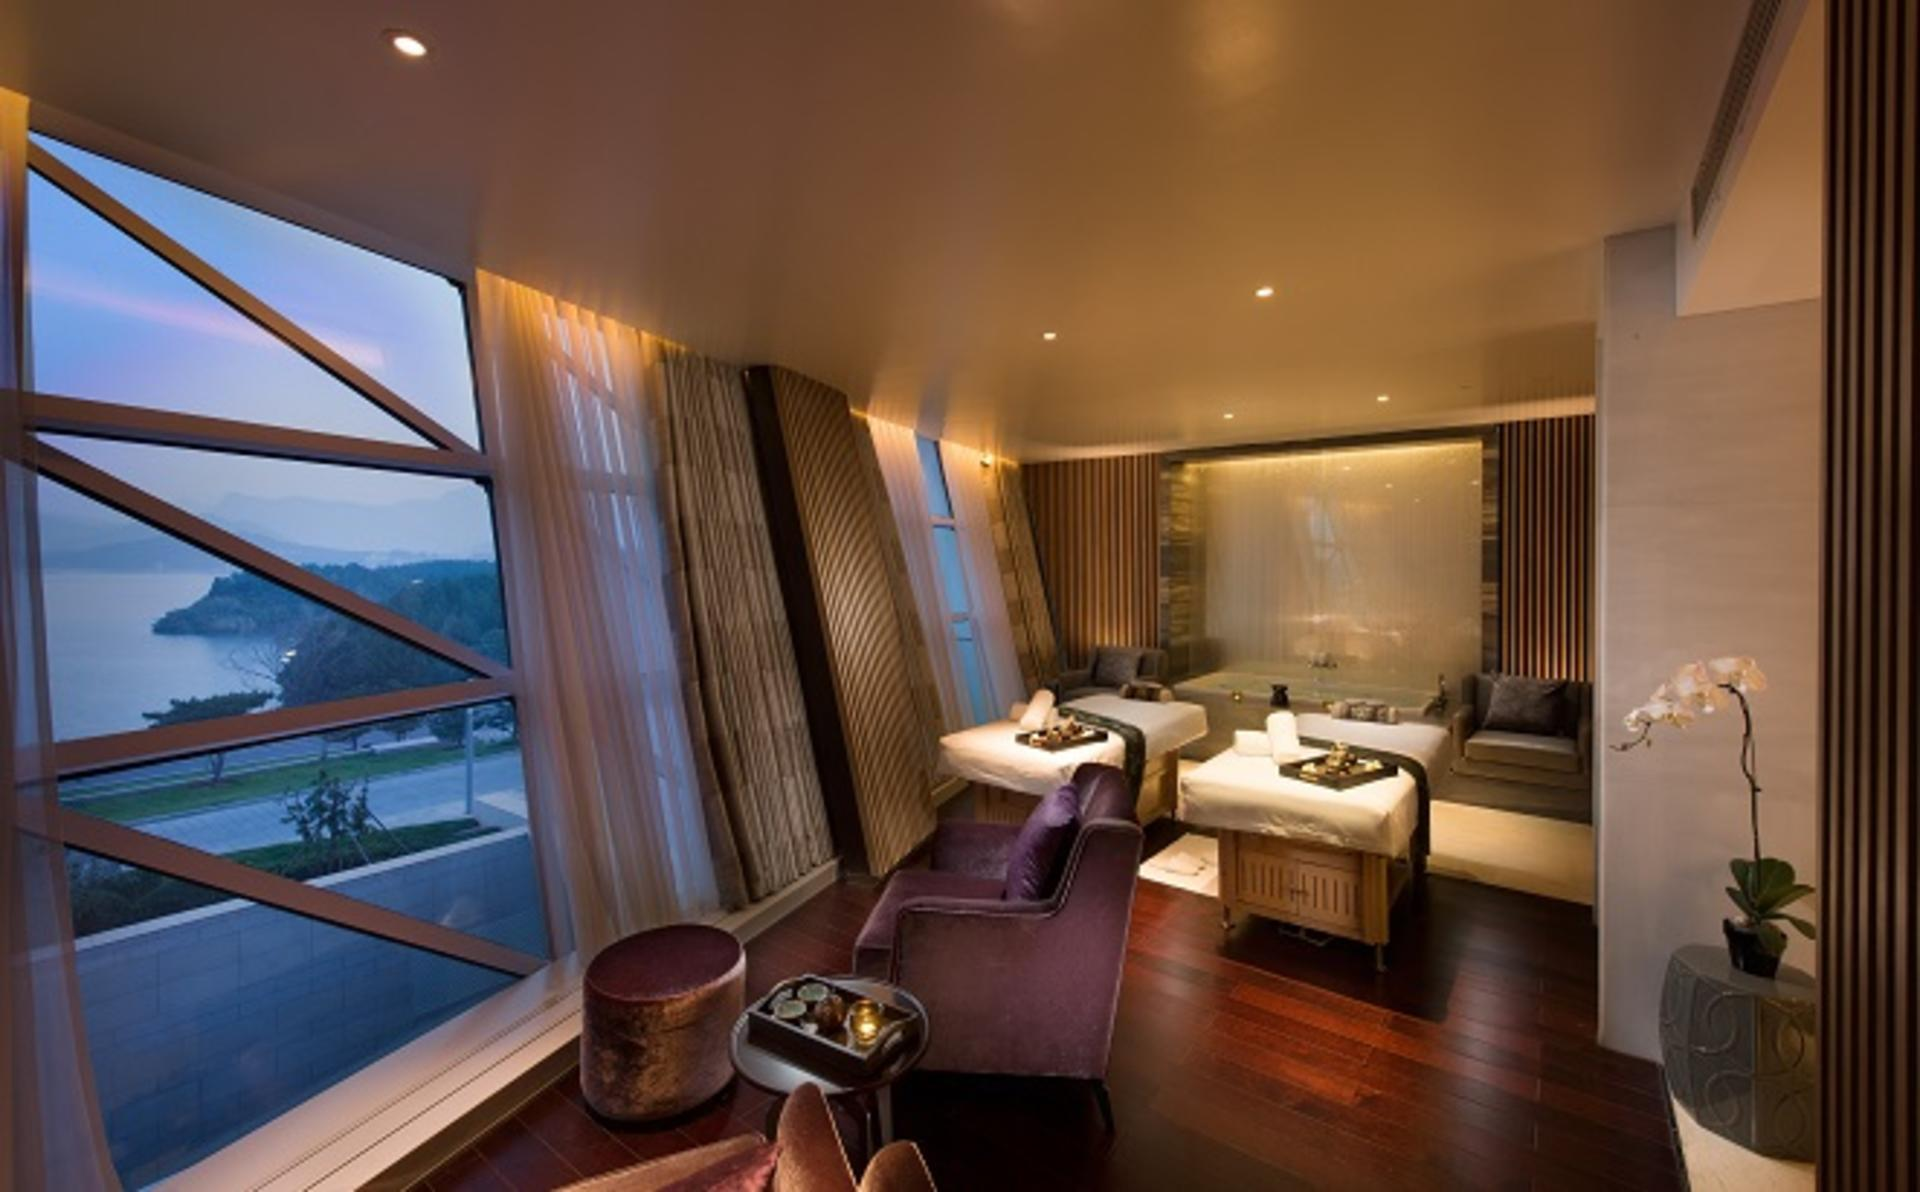 Sunrise Kempinski Hotel, Beijing - Luxury Spa Treatment